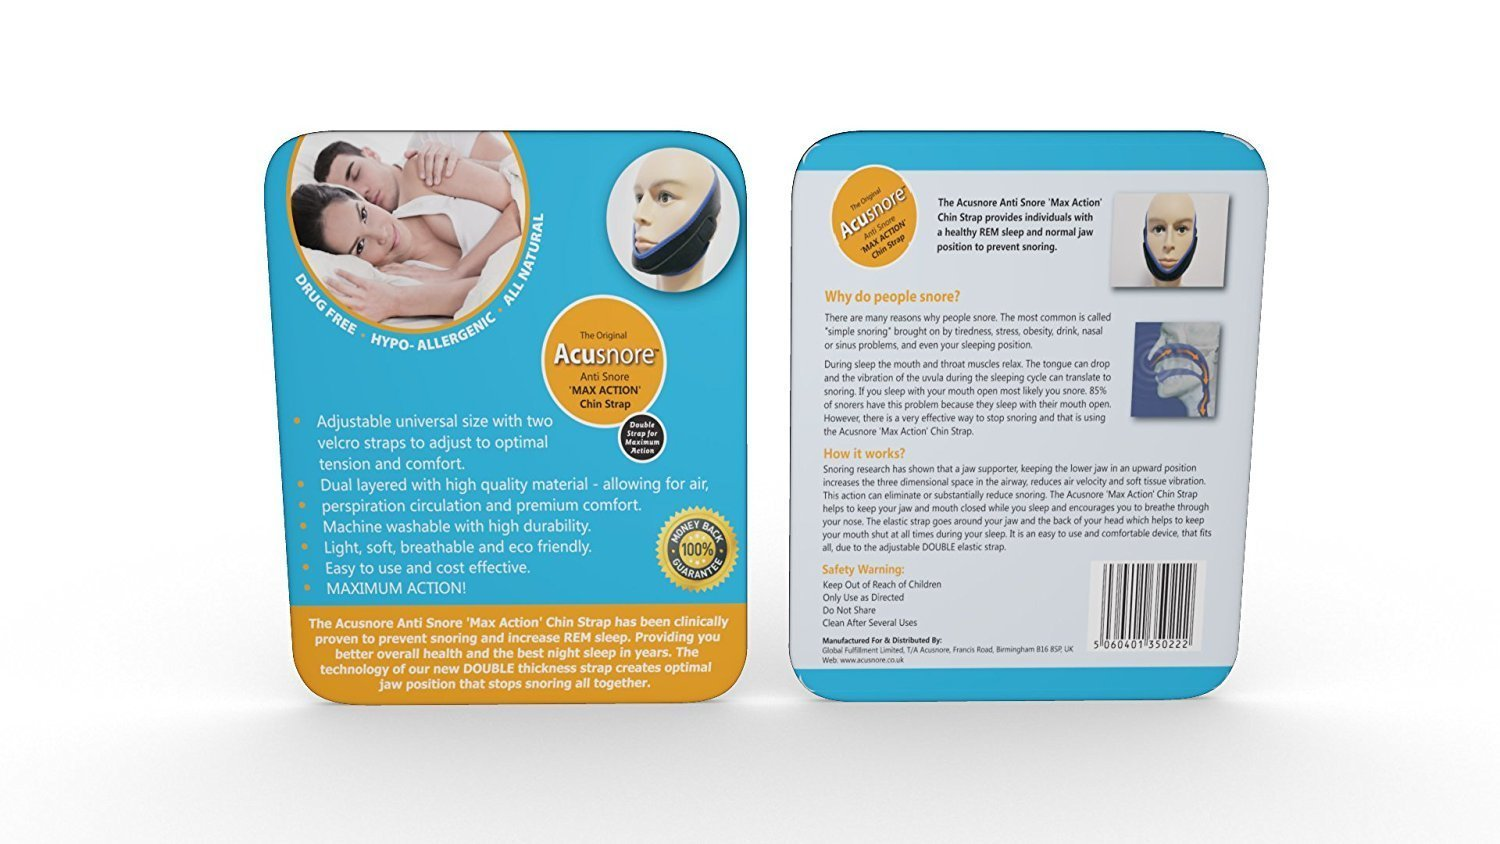 Acusnore Anti Snoring Double Support Max Action Chin Strap, Snoring & Sleep Apnea Aids - Image 3